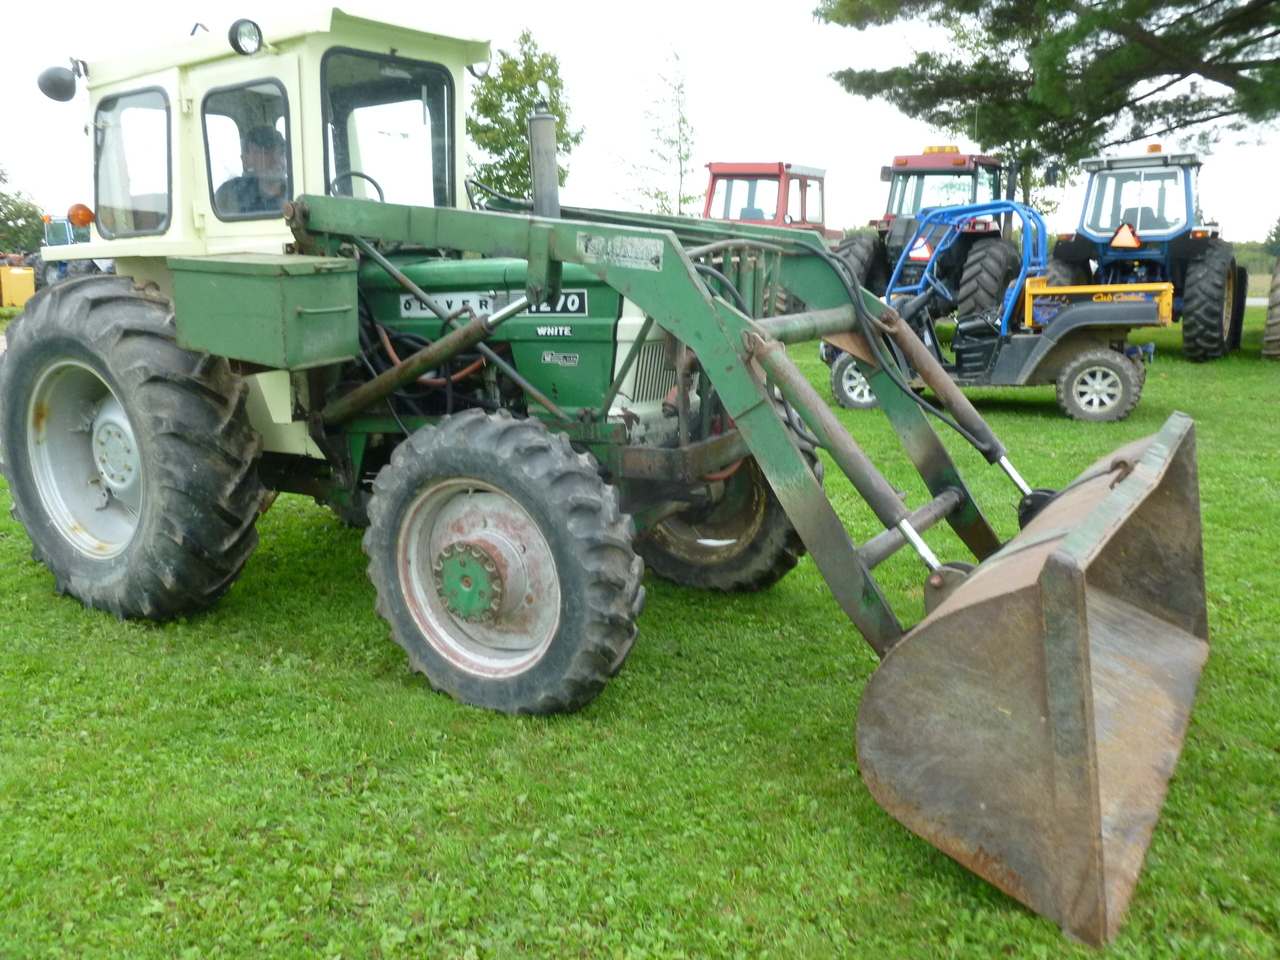 hight resolution of oliver 1365 farm tractor oliver farm tractors oliver farm tractors tractorhd mobi